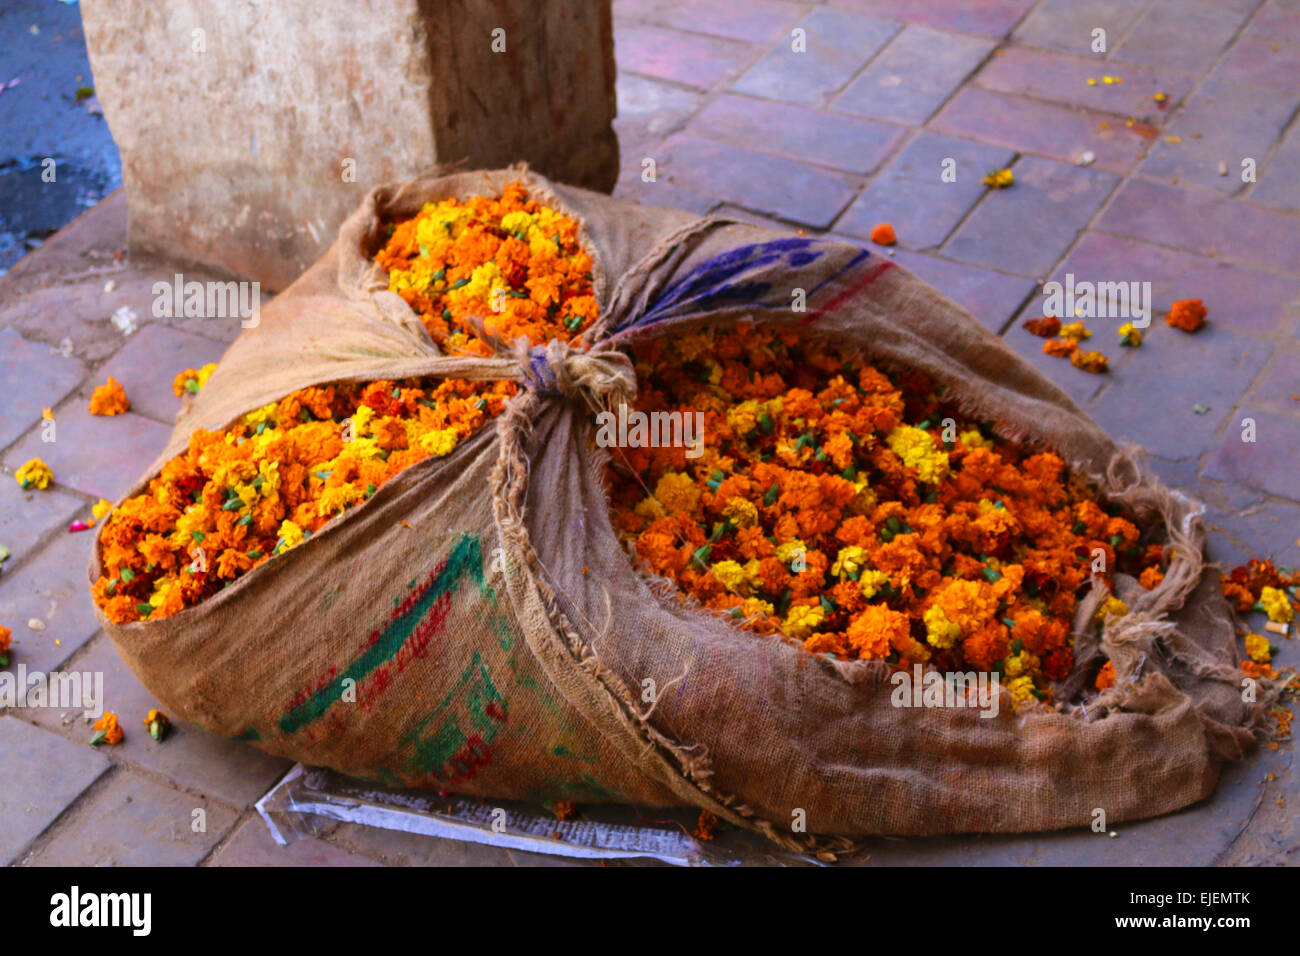 A sackful of flowers in Delhi - Stock Image